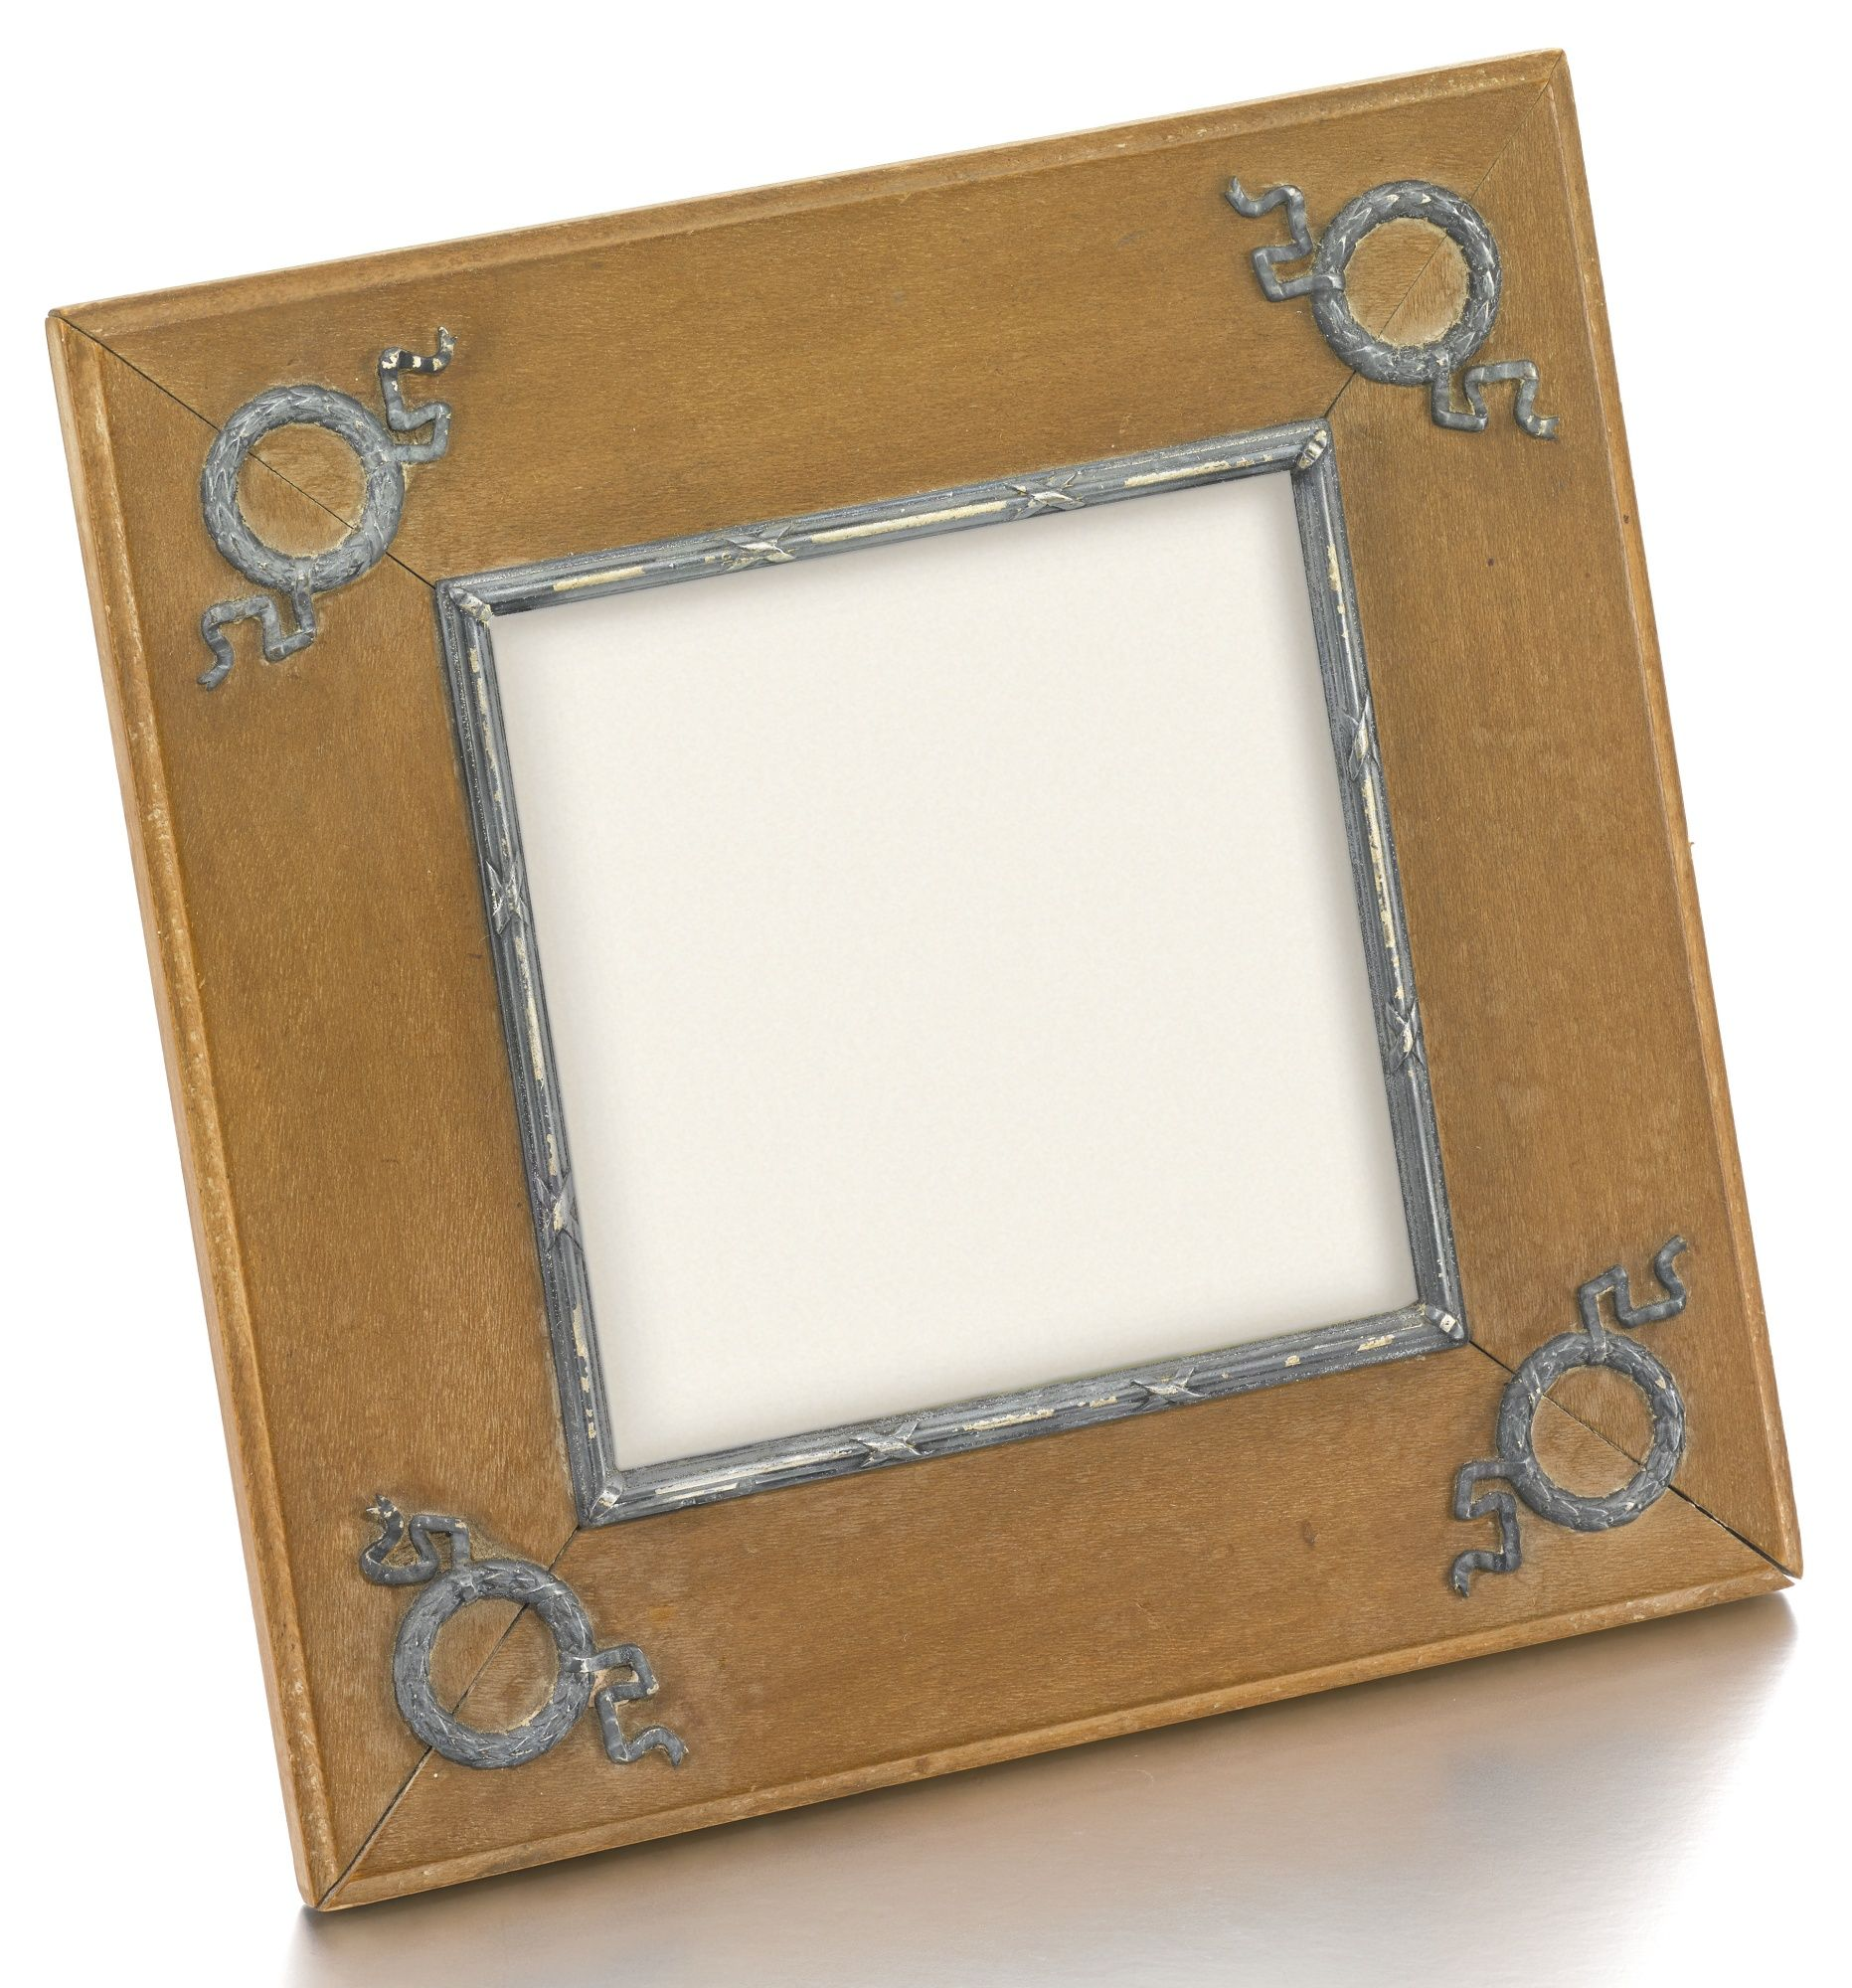 A Fabergé silver-mounted wood frame, workmaster Feodor Afanassiev ...